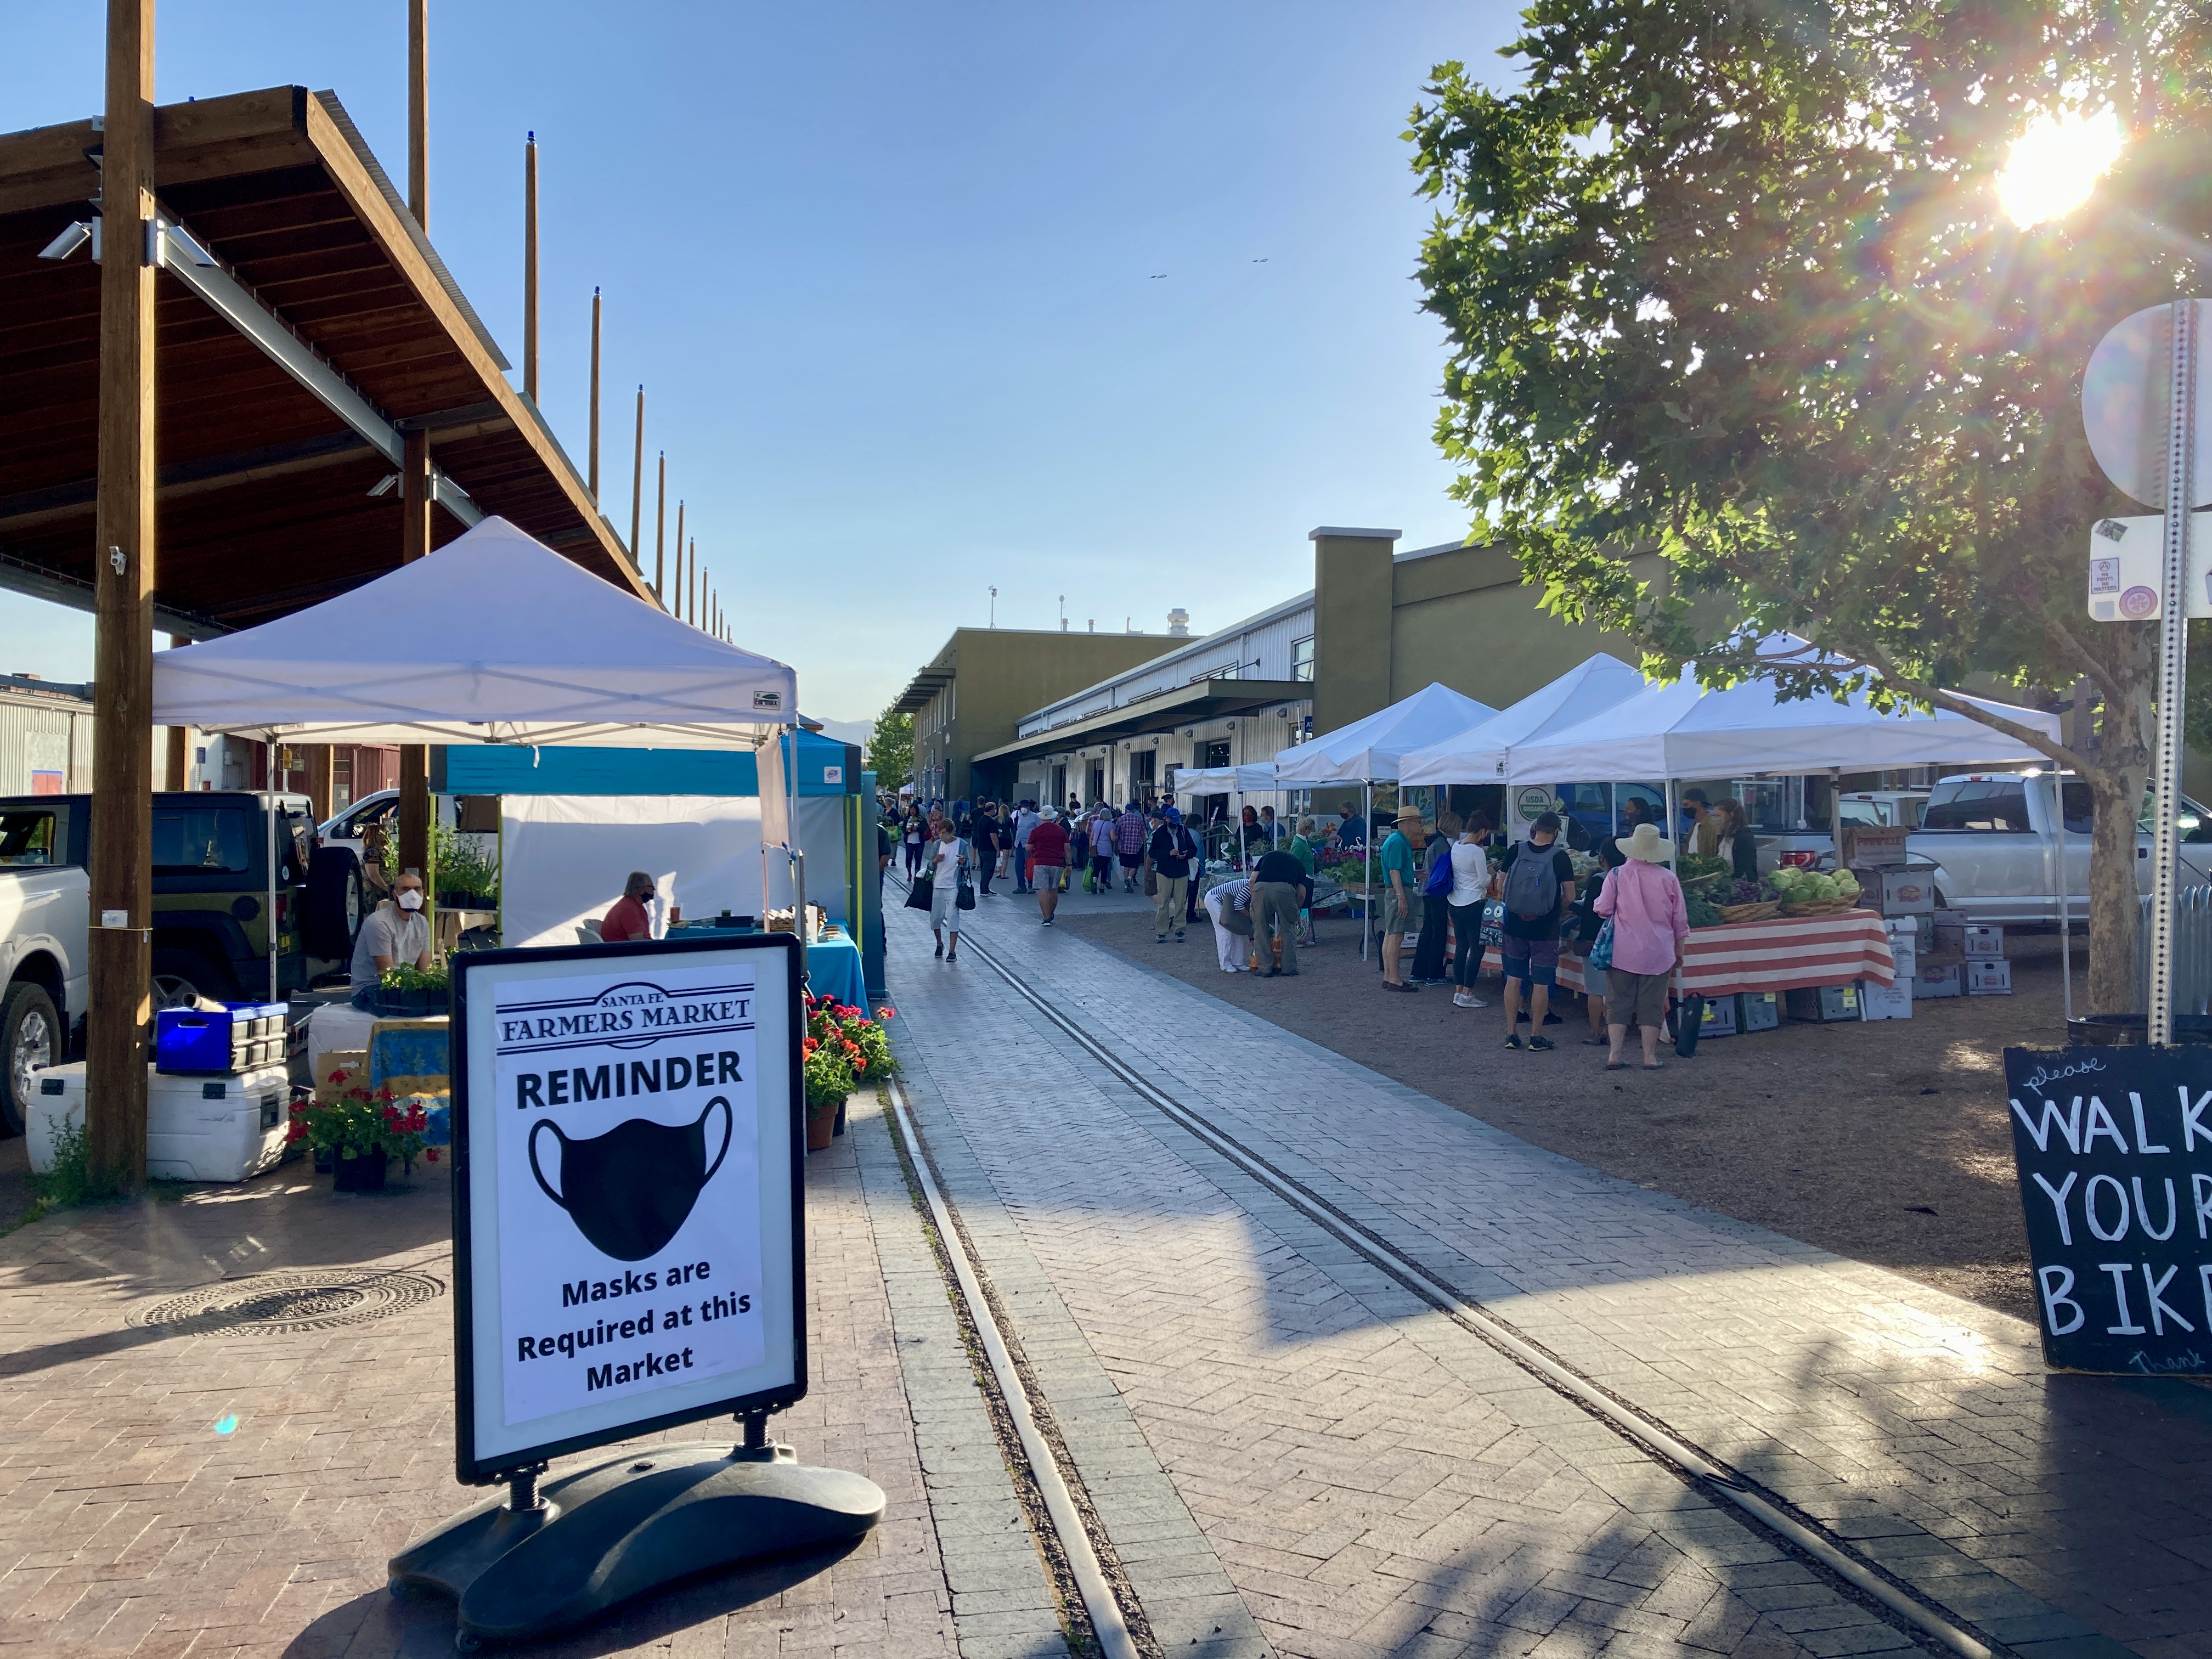 The farmers market at the Railyard